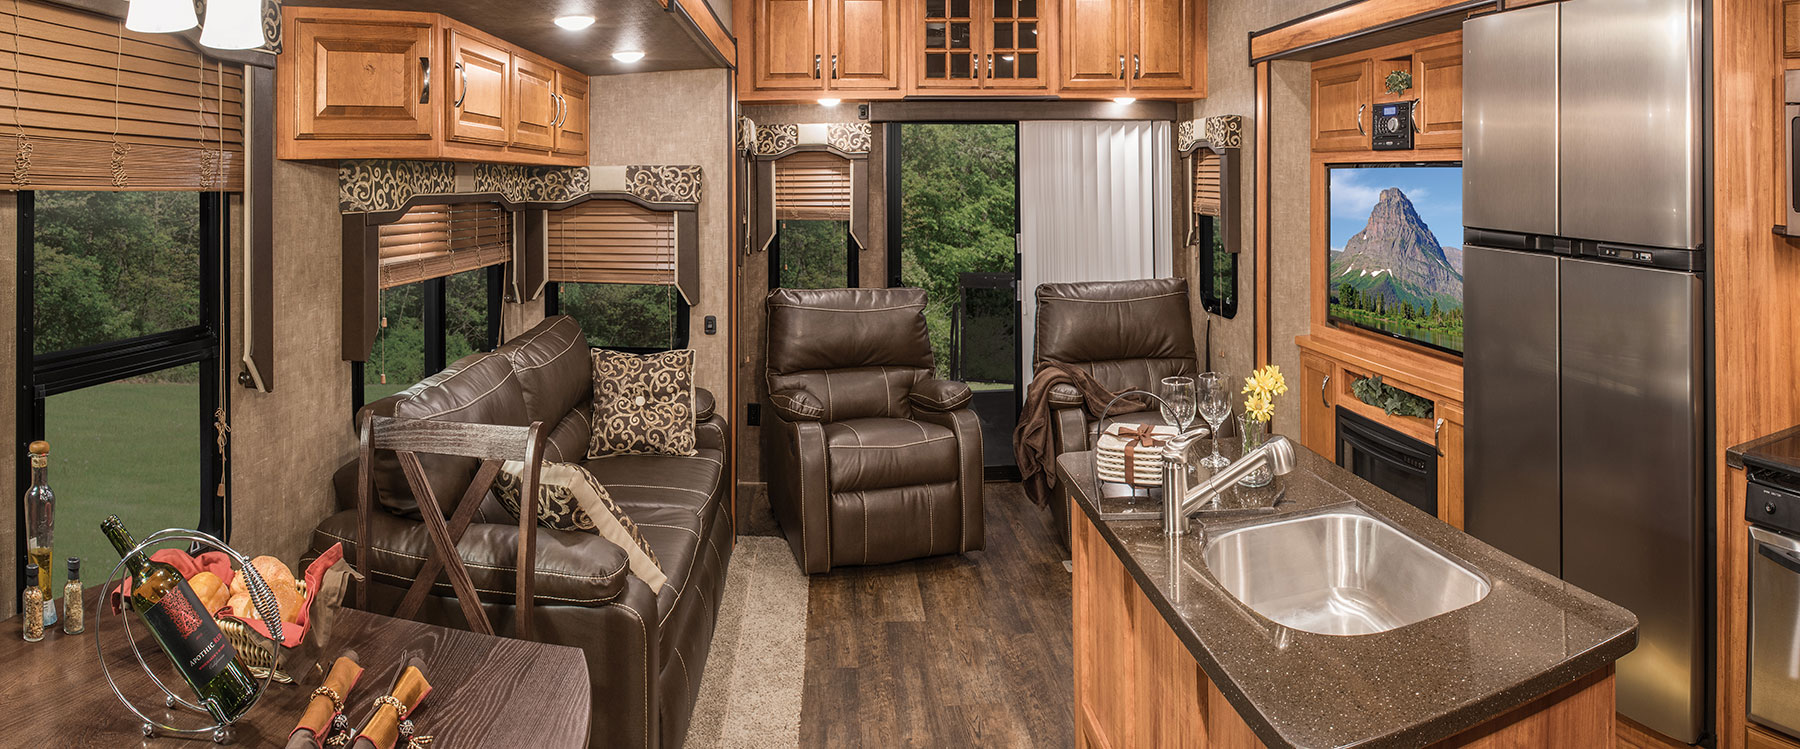 2016 durango gold g382mbq fulltime luxury fifth wheel kz rv - 2016 luxury front living room 5th wheel ...